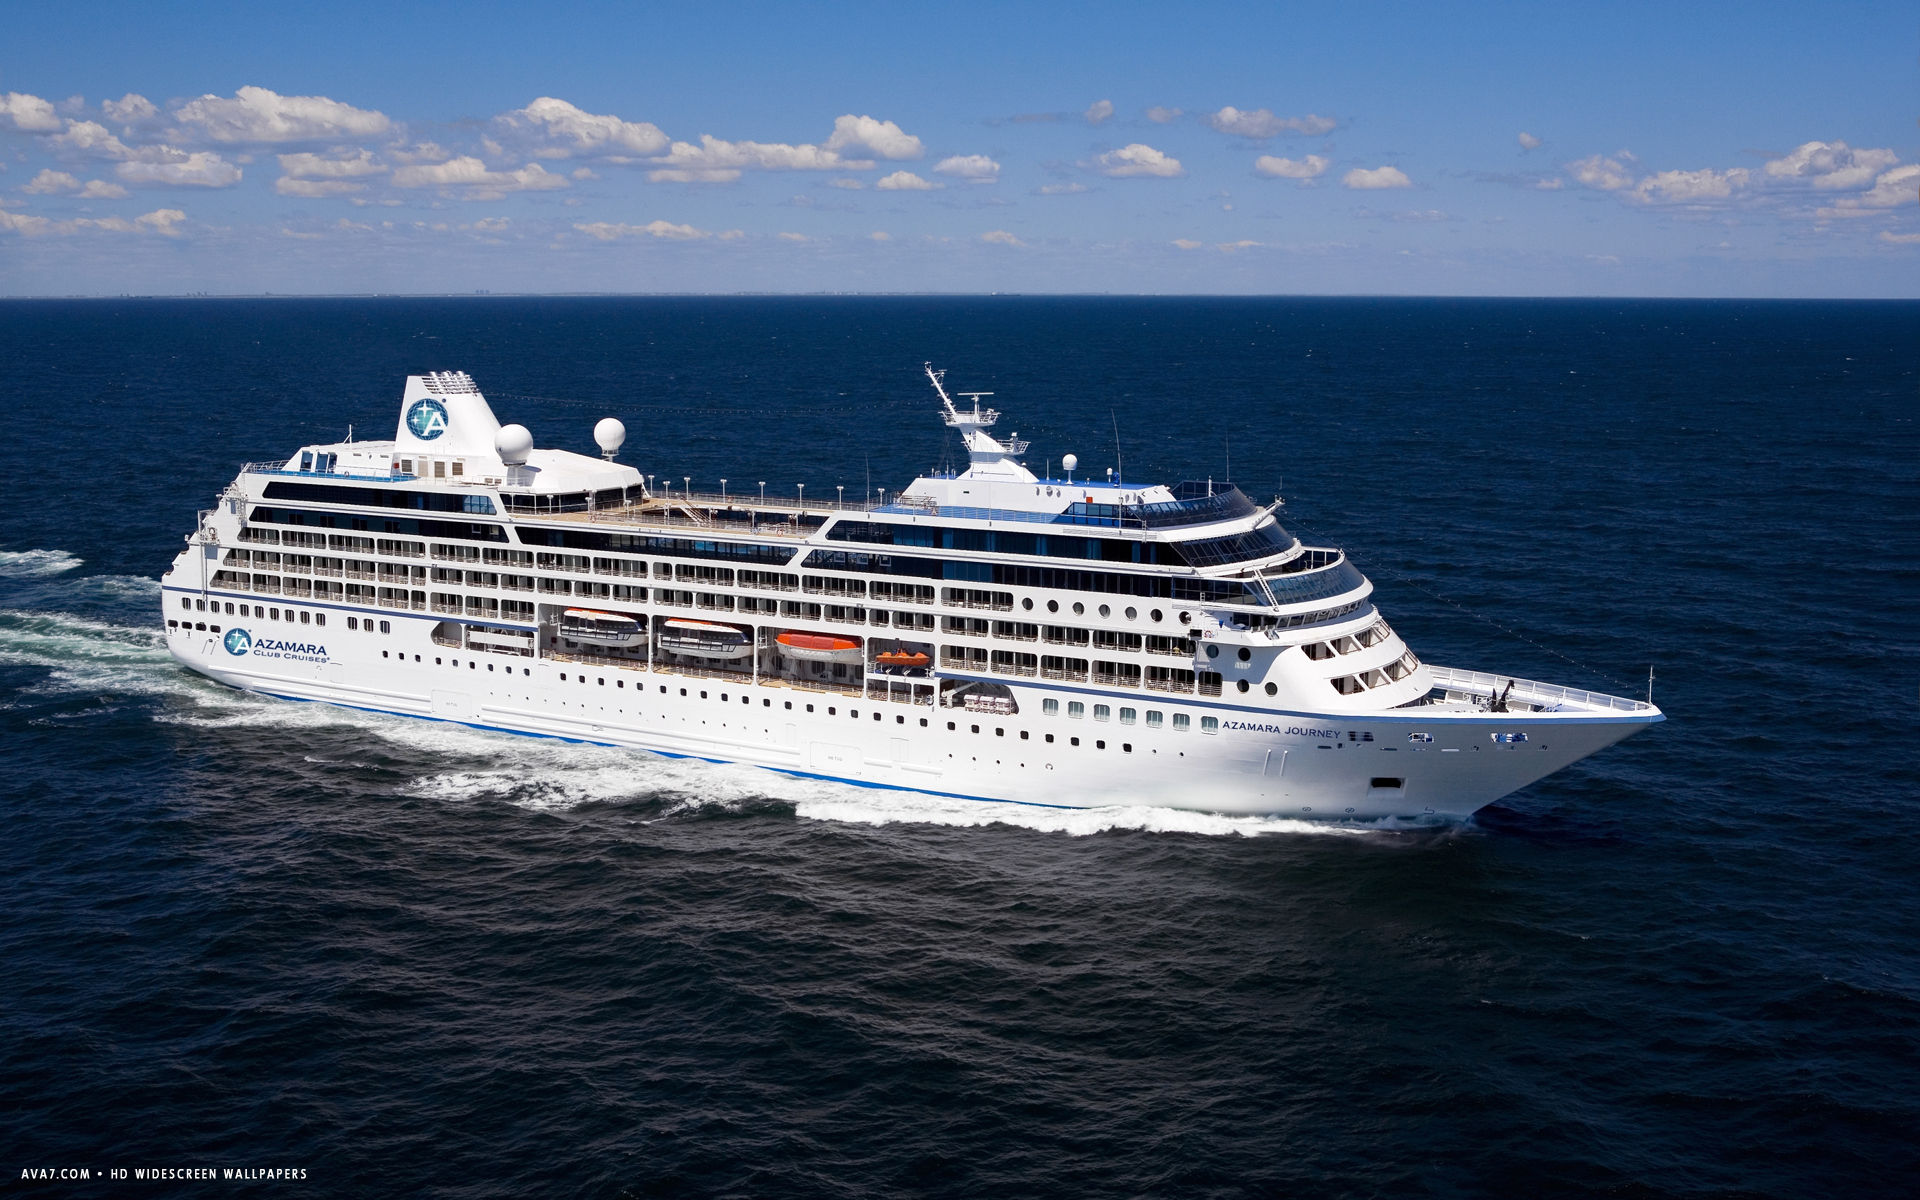 azamara journey cruise ship hd widescreen wallpaper